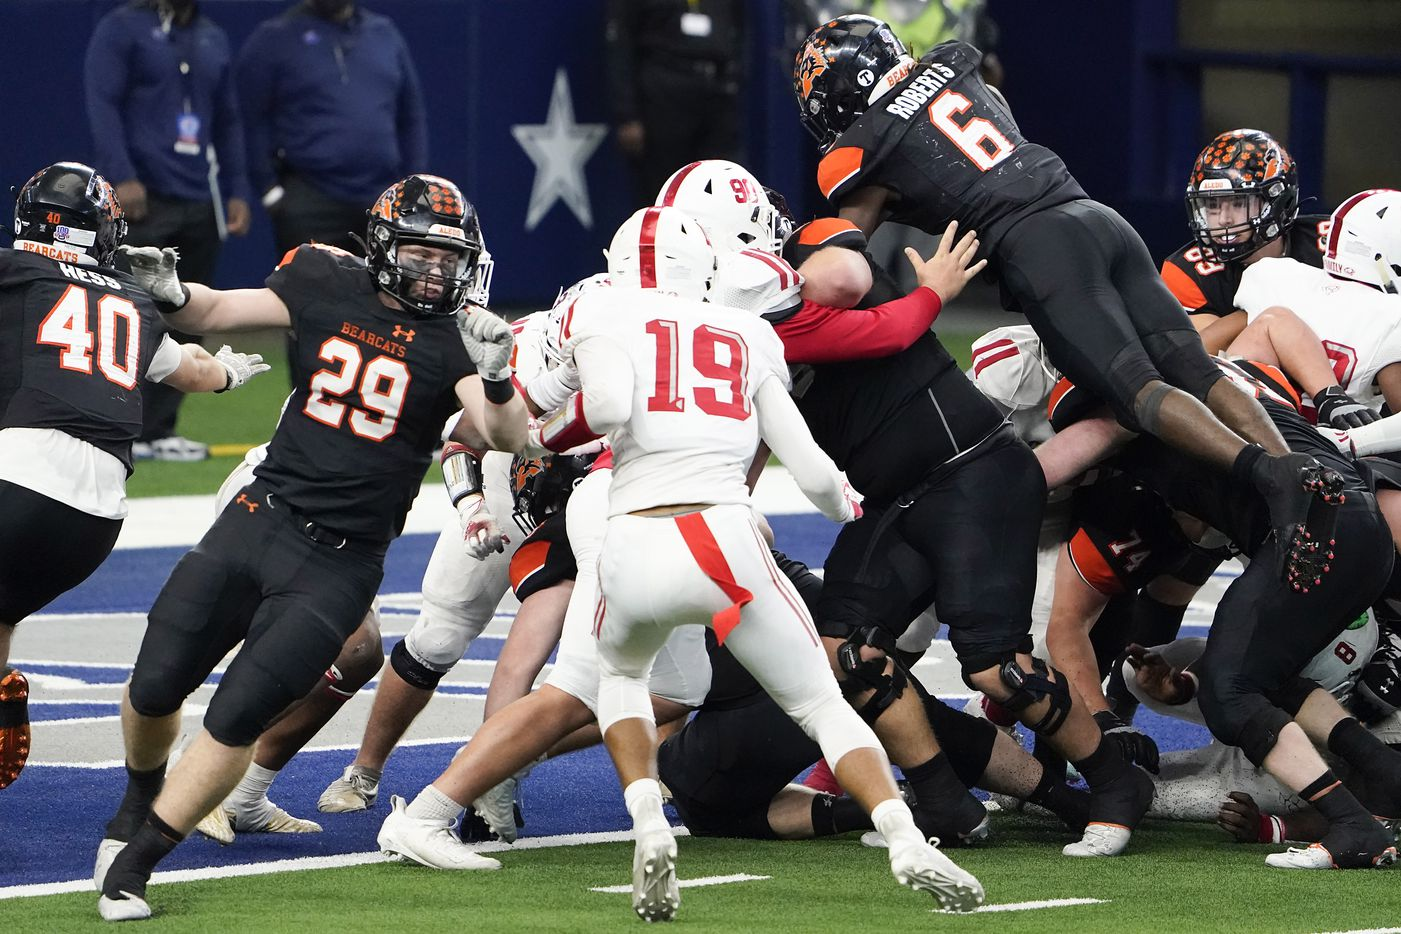 Aledo running back DeMarco Roberts (6) dives over the pile for a touchdown during the second half of a 56-21 victory over Crosby to win the Class 5A Division II state football championship game at AT&T Stadium on Friday, Jan. 15, 2021, in Arlington. The victory gave the Bearcats the 10th state championship in school history. (Smiley N. Pool/The Dallas Morning News)